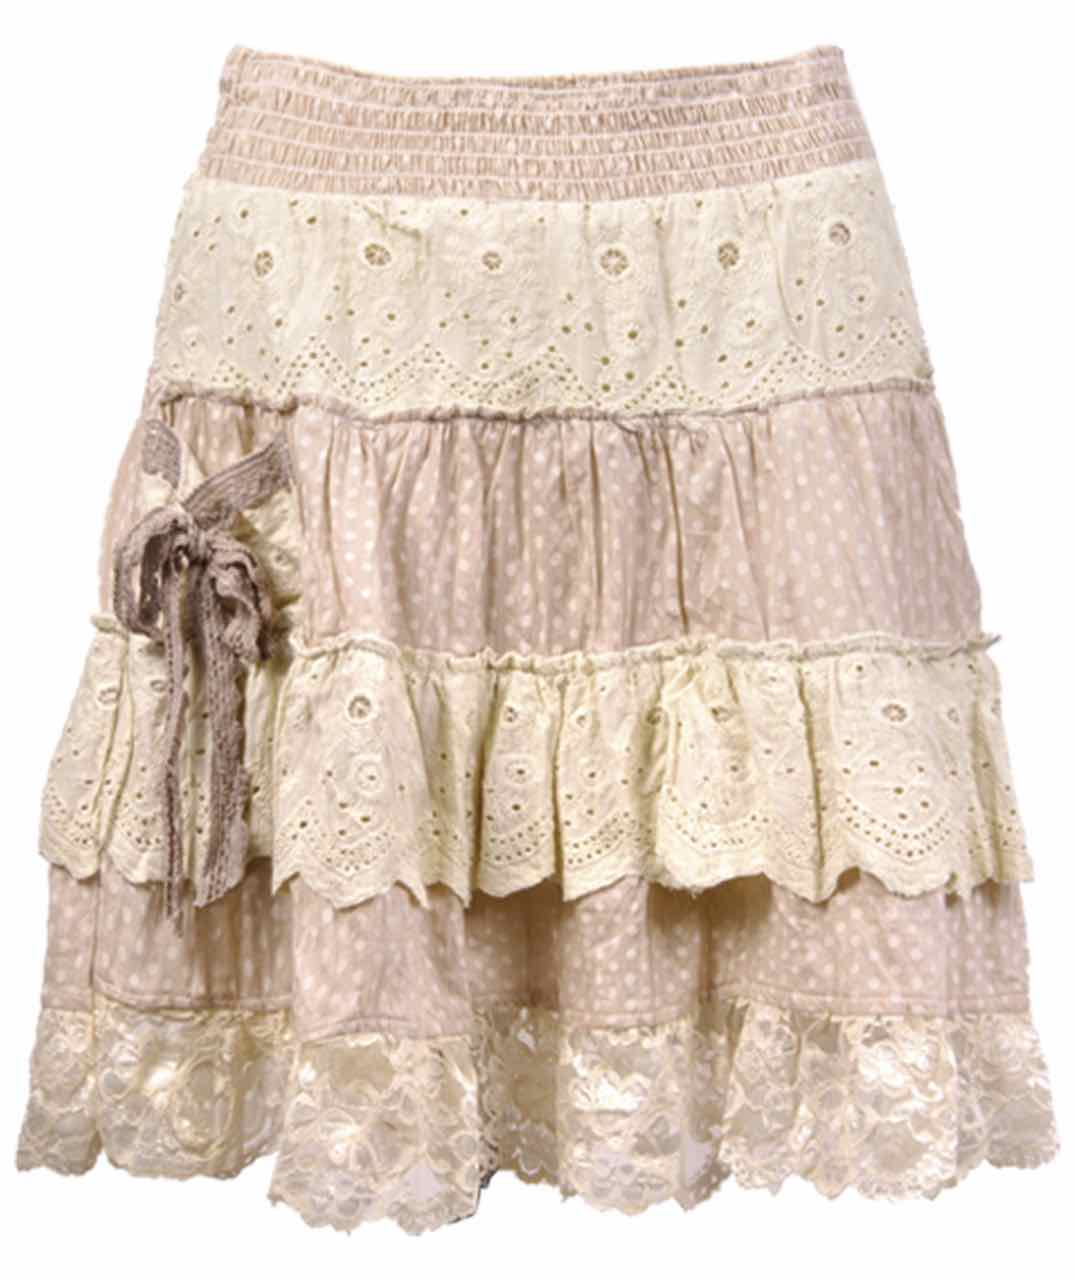 30247-FASavage Culture Skirt DANIELA, Beige